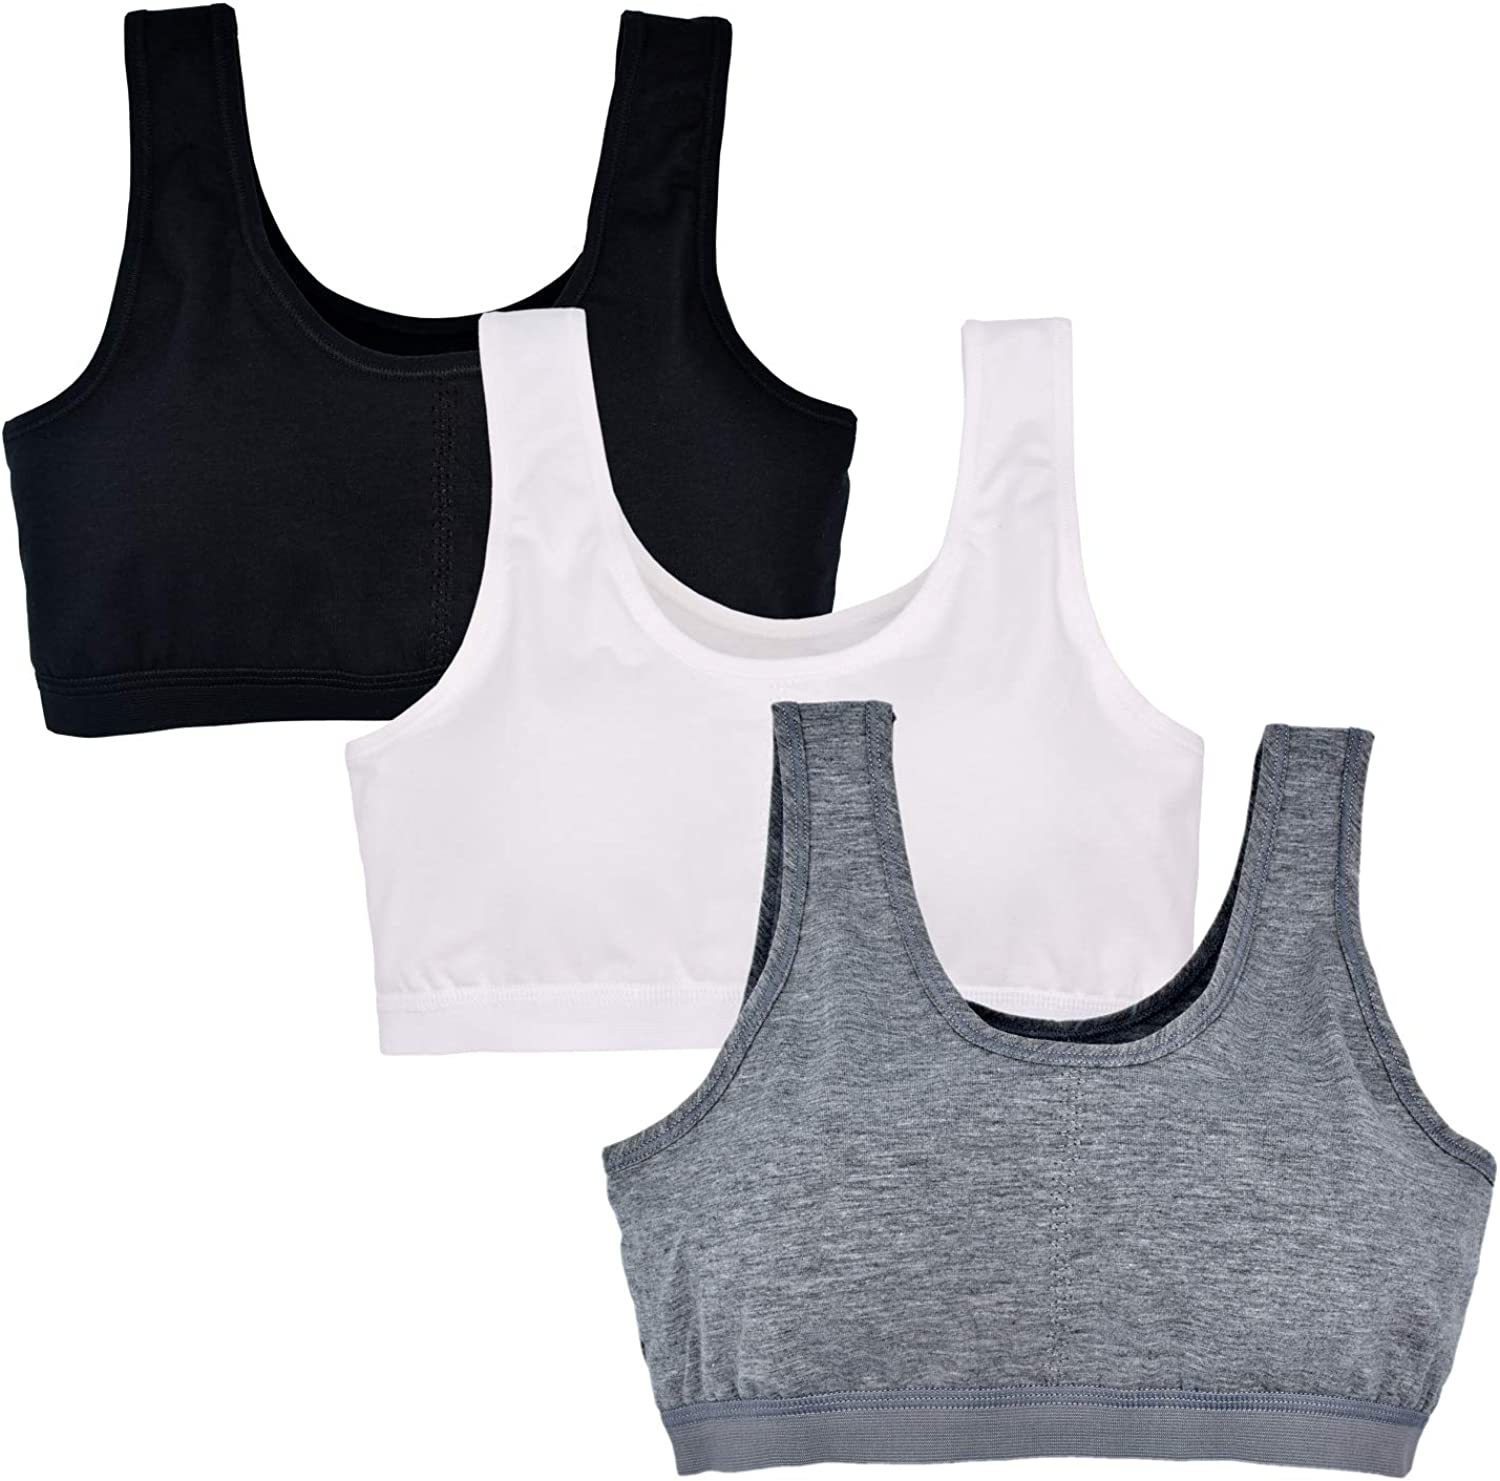 VeaRin Girls Bras 10-12 14-16 Cami New item Padded Popular shop is the lowest price challenge Training